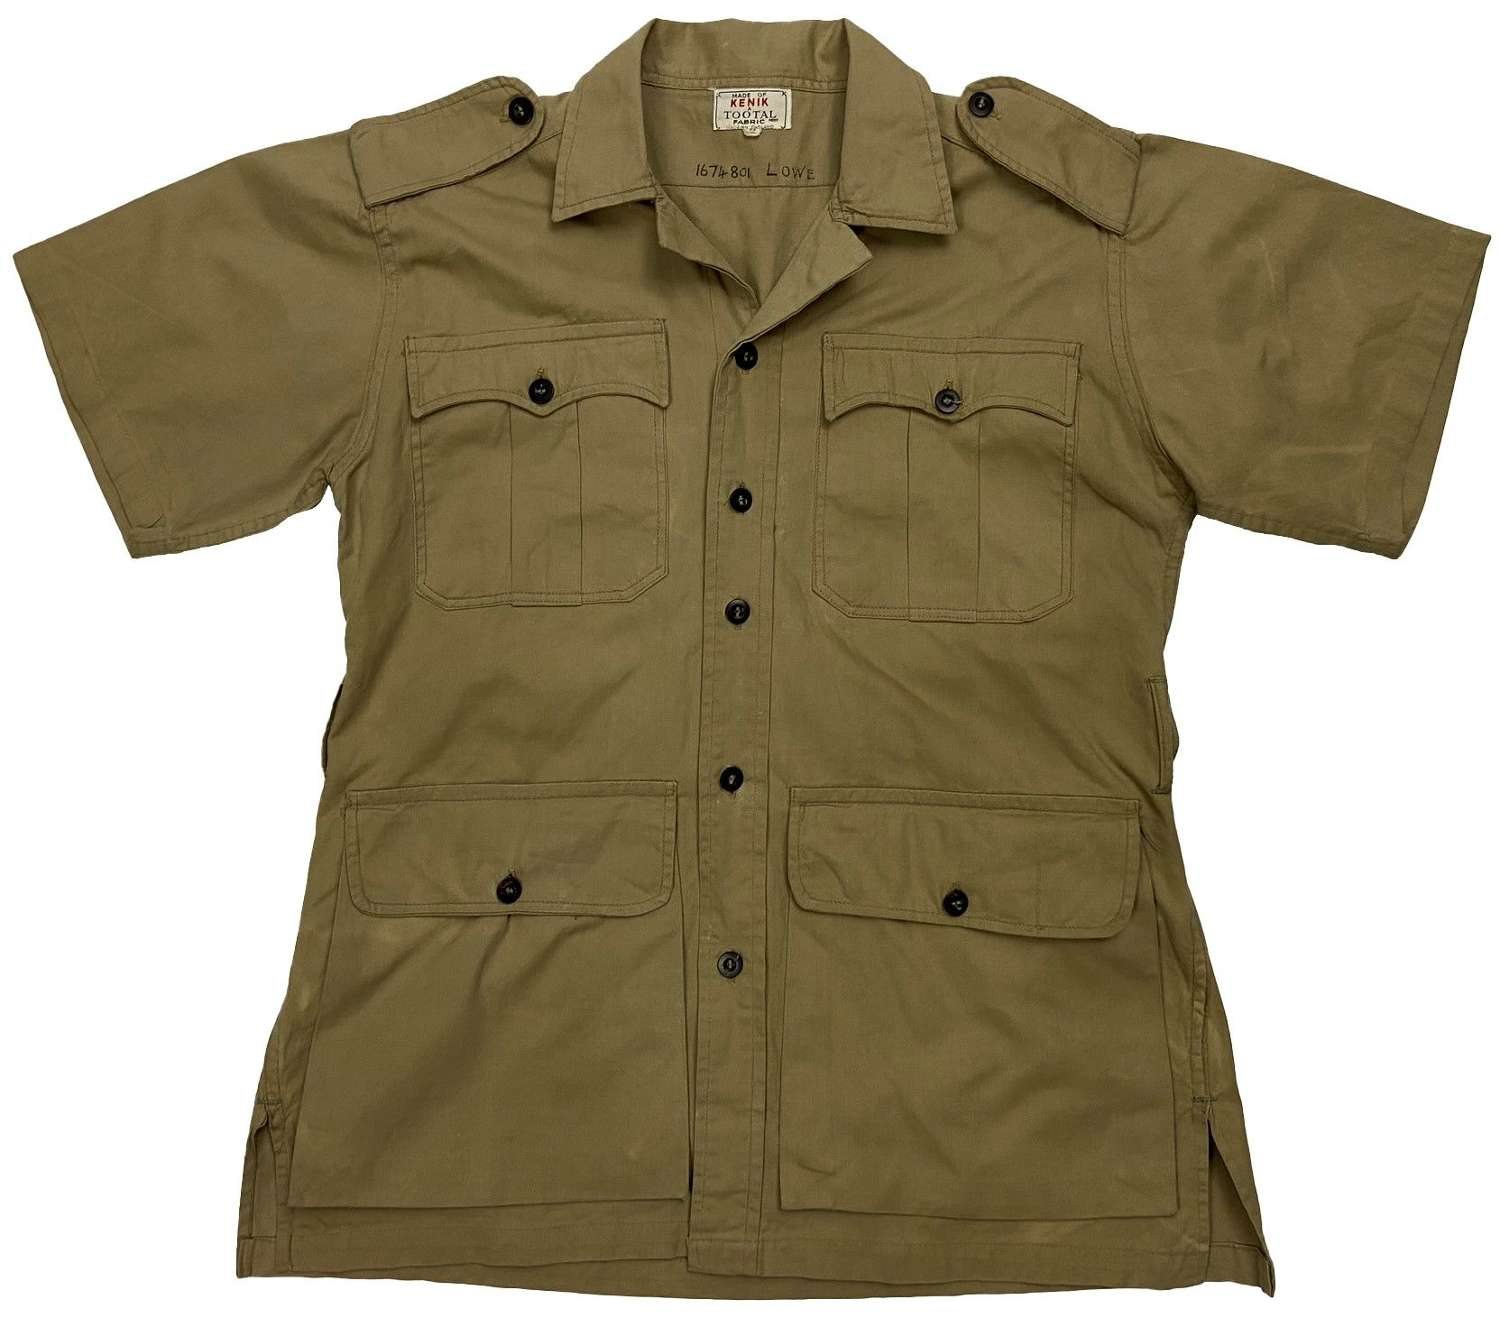 Original 1950s Private Purchase Khaki Drill Bush Jacket by 'Tootal'